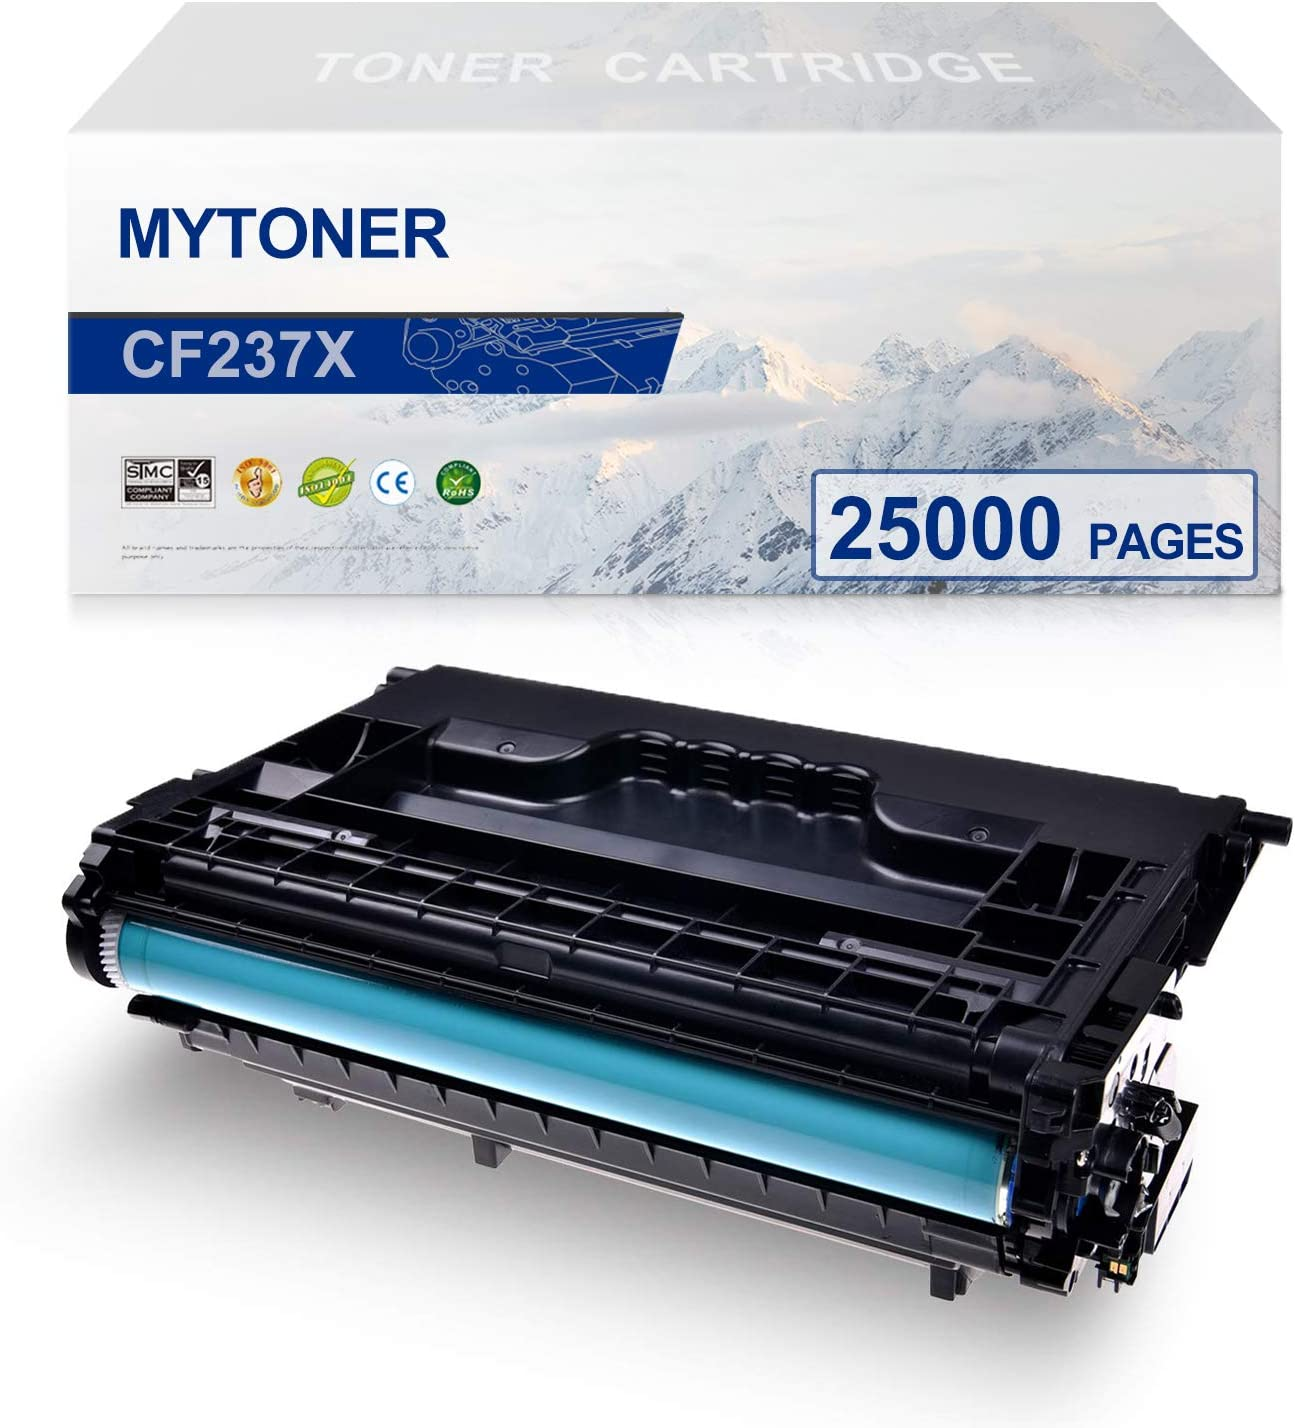 MYTONER High Yield Compatible Toner Cartridge Replacement for HP 37X CF237X for HP Laserjet Enterprise HP Laserjet Enterprise MFP M607 M608 M609 M631 M632 M633 Printer(Black,1-Pack)